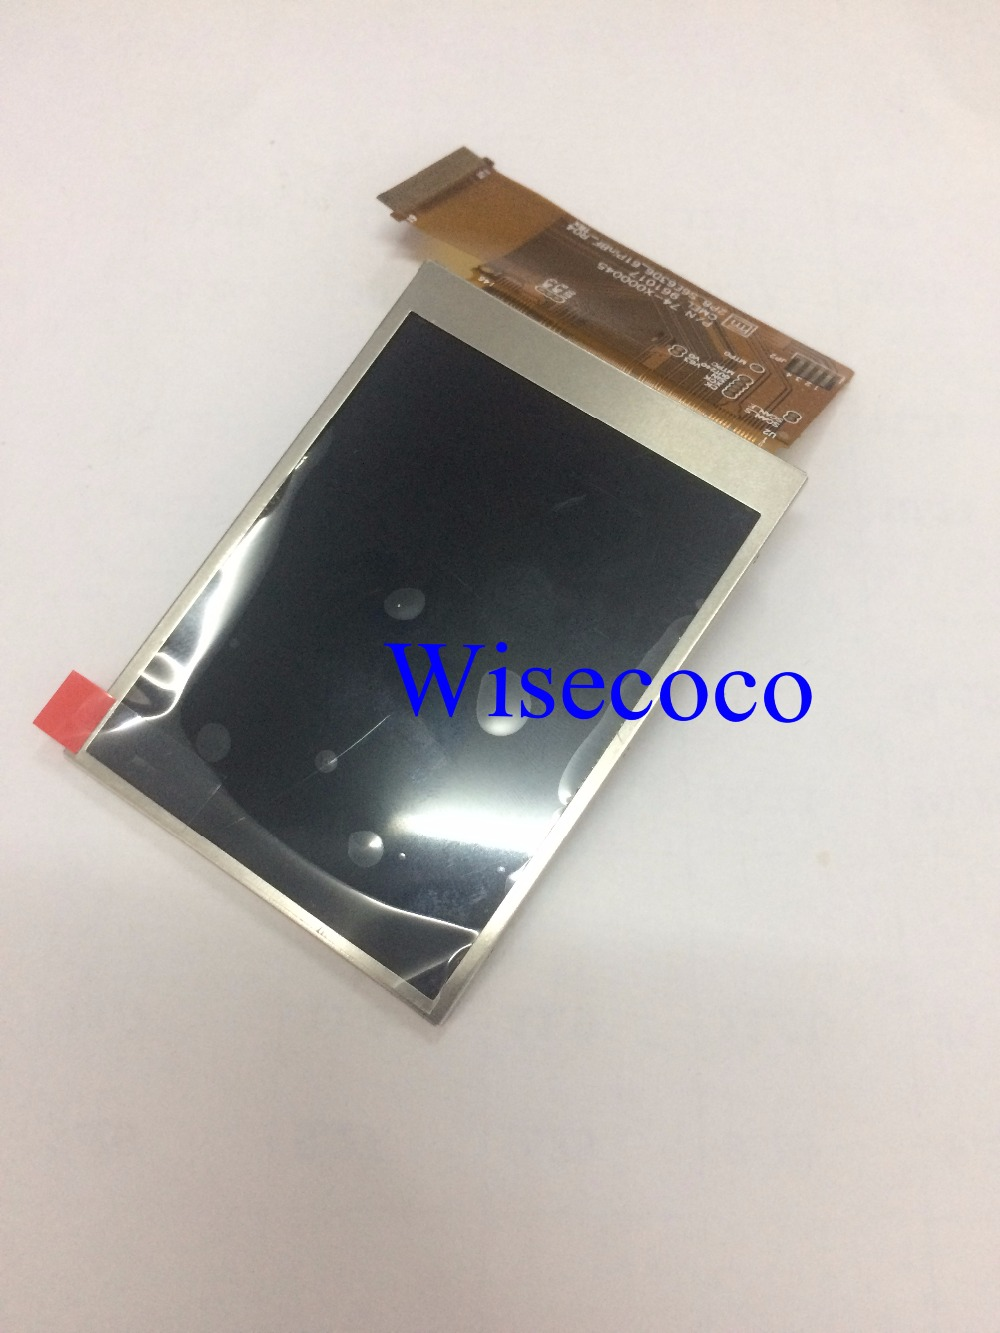 Image 3 - Original 2.83 inch lcd dispaly P/N 74 X000045 CMEL 960914 2P8_S6E63D6_61PinBF_R03 C0283QGLC T C0283QGLD T C0283QGLZ oled screen-in Mobile Phone LCD Screens from Cellphones & Telecommunications